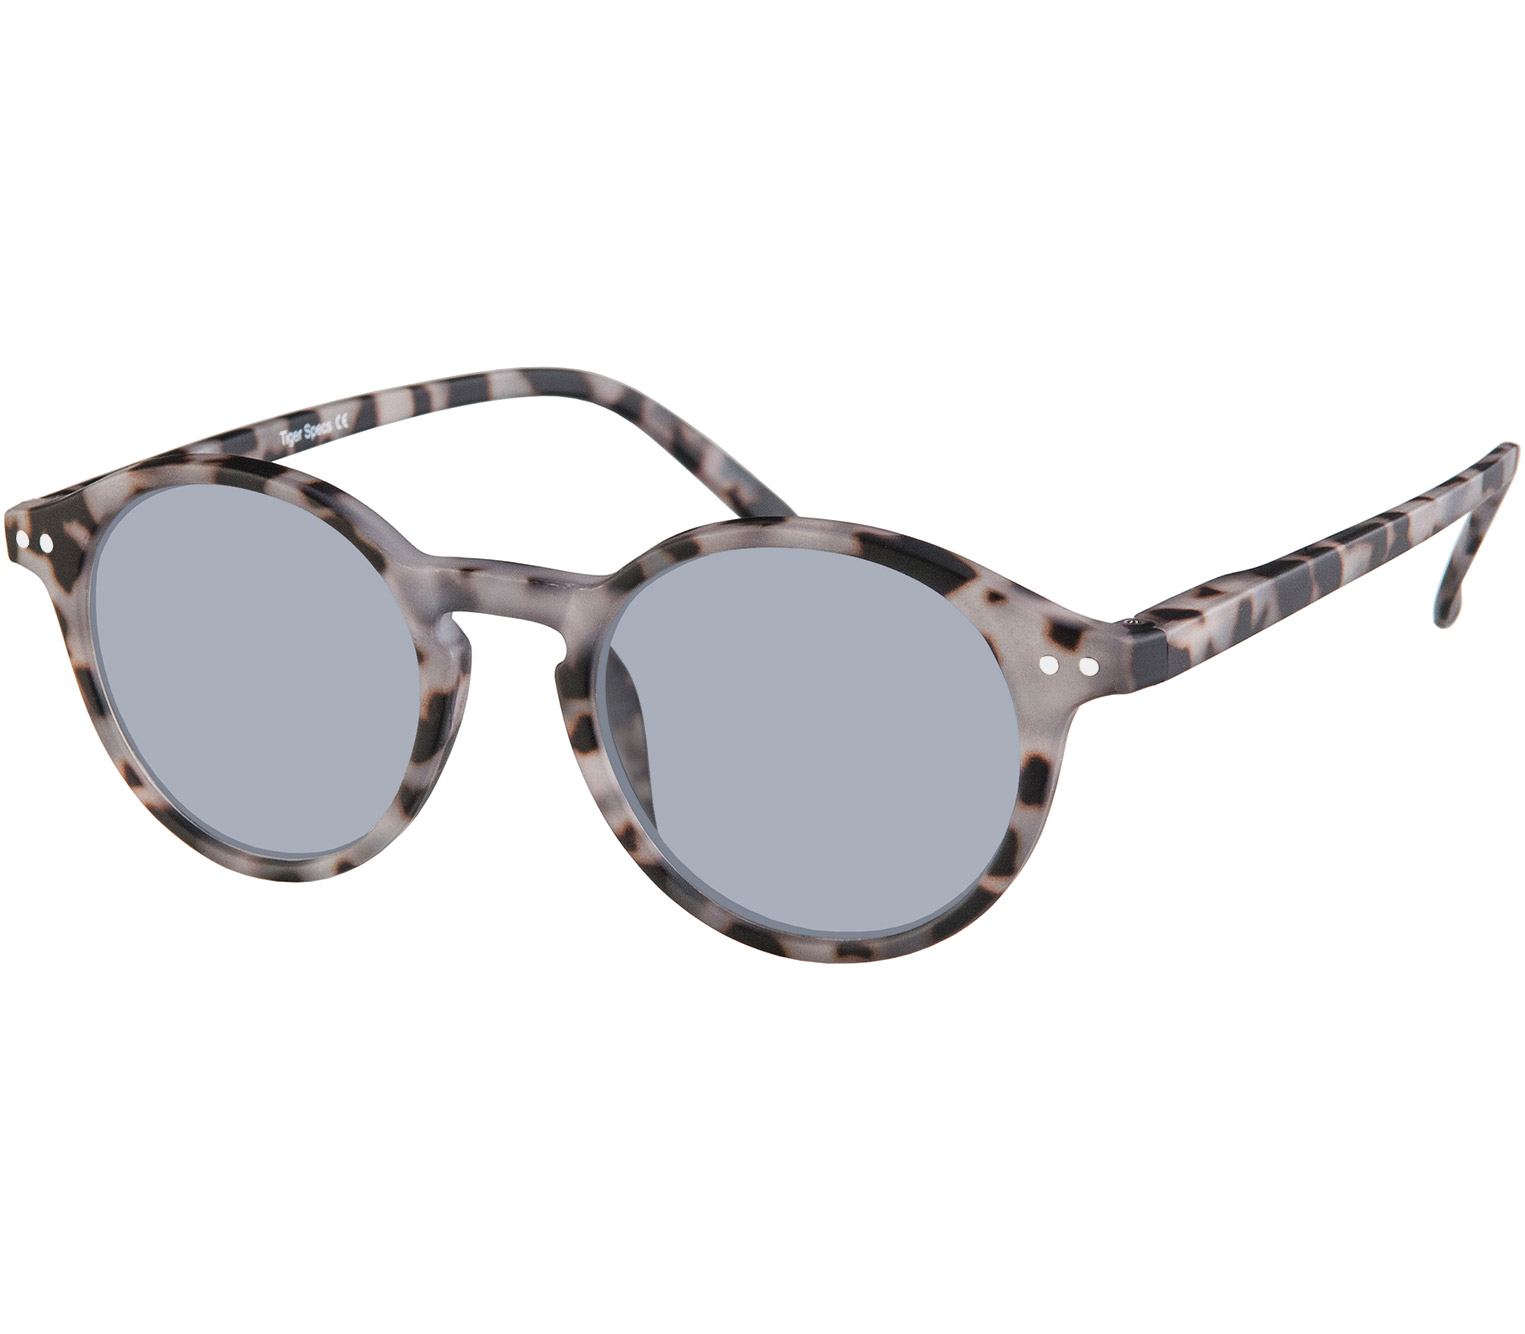 Main Image (Angle) - Palma (Grey Tortoise) Retro Sun Readers